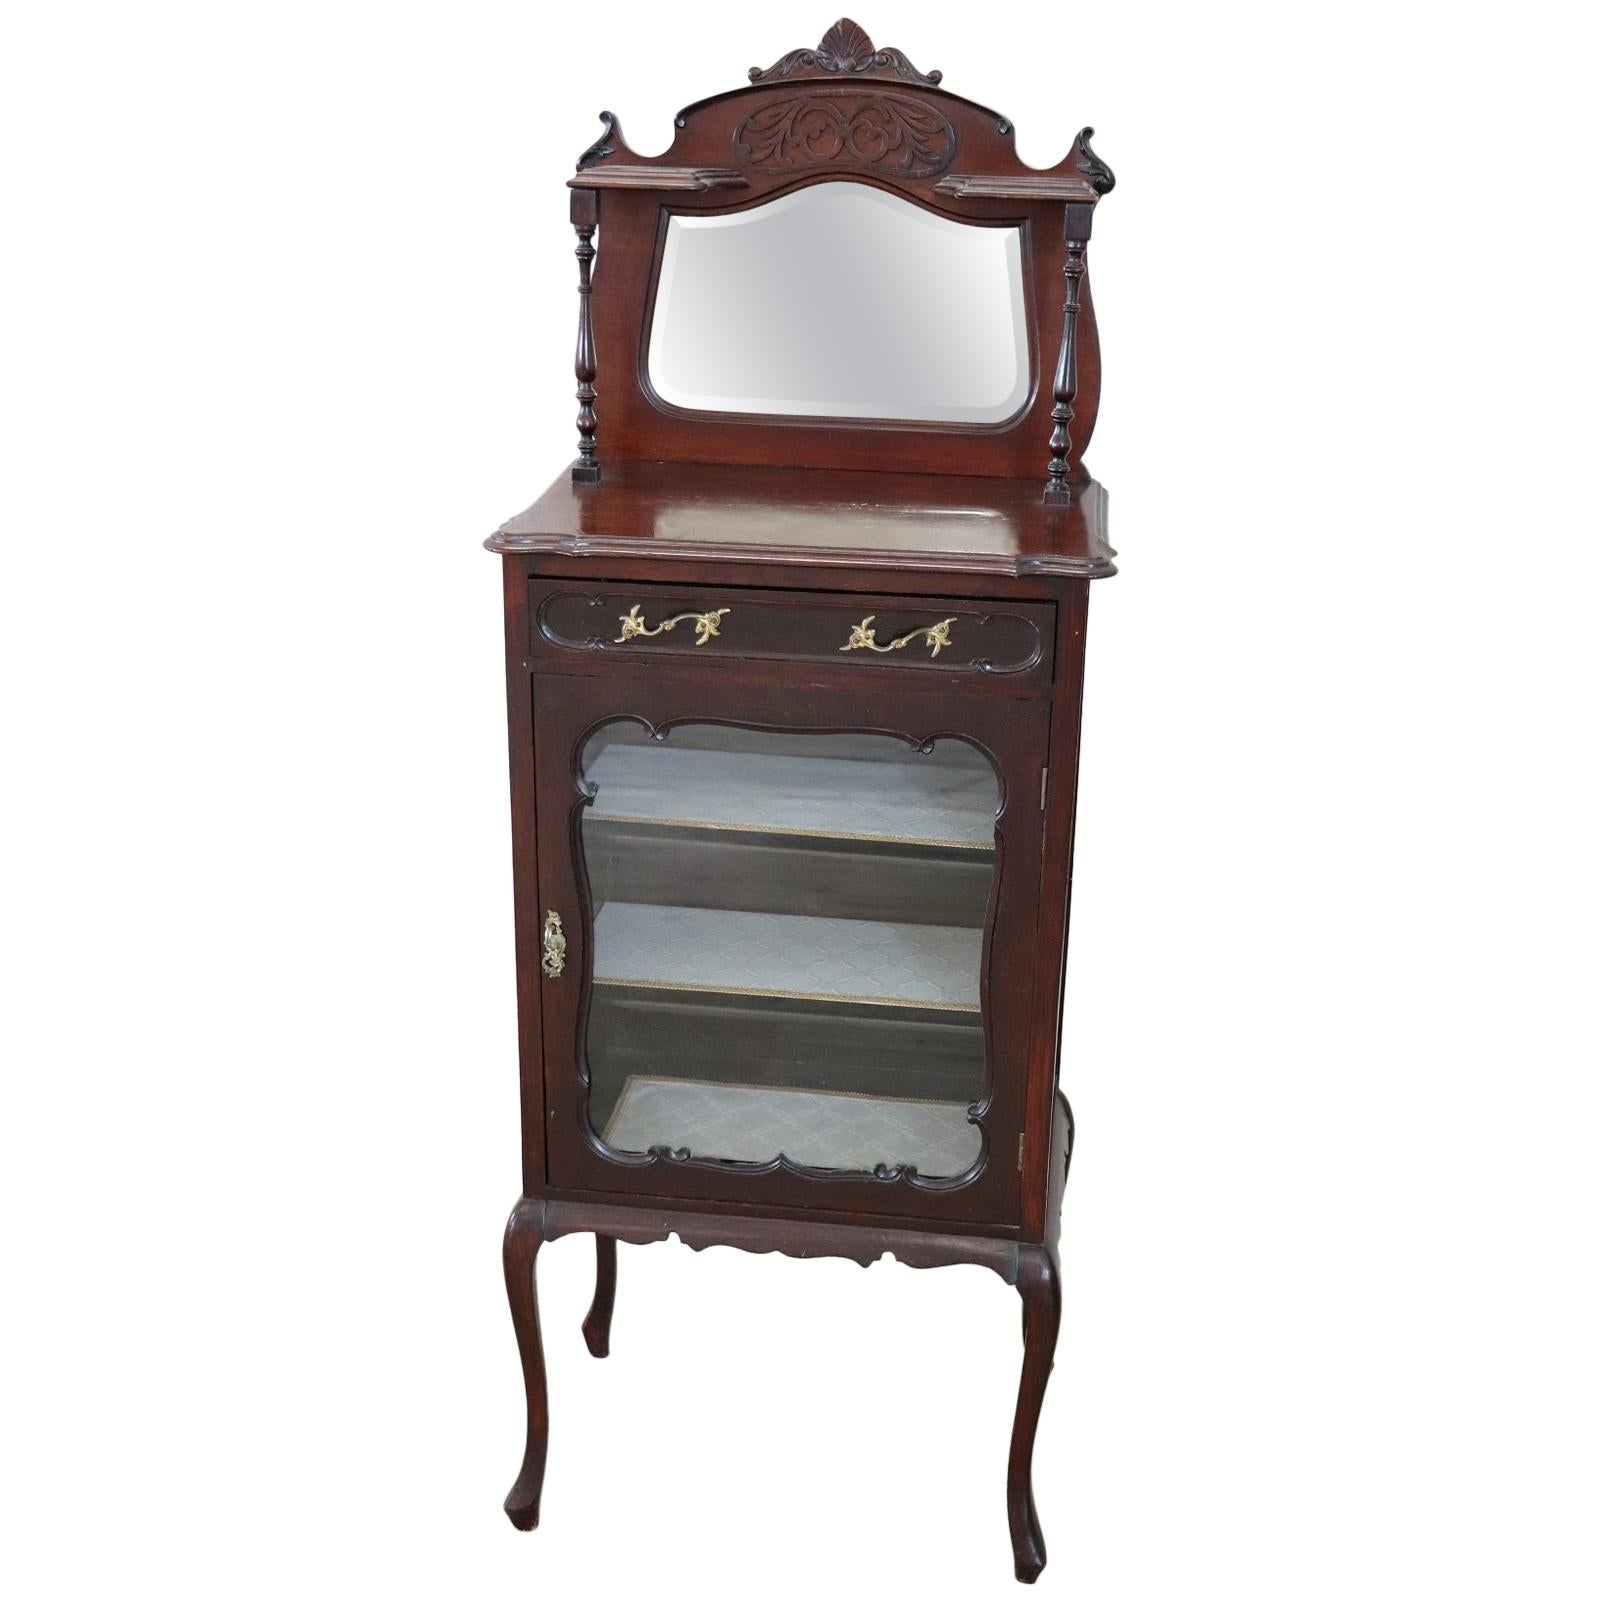 19th Century English Mahogany Carved Antique Vitrine or Display Cabinet